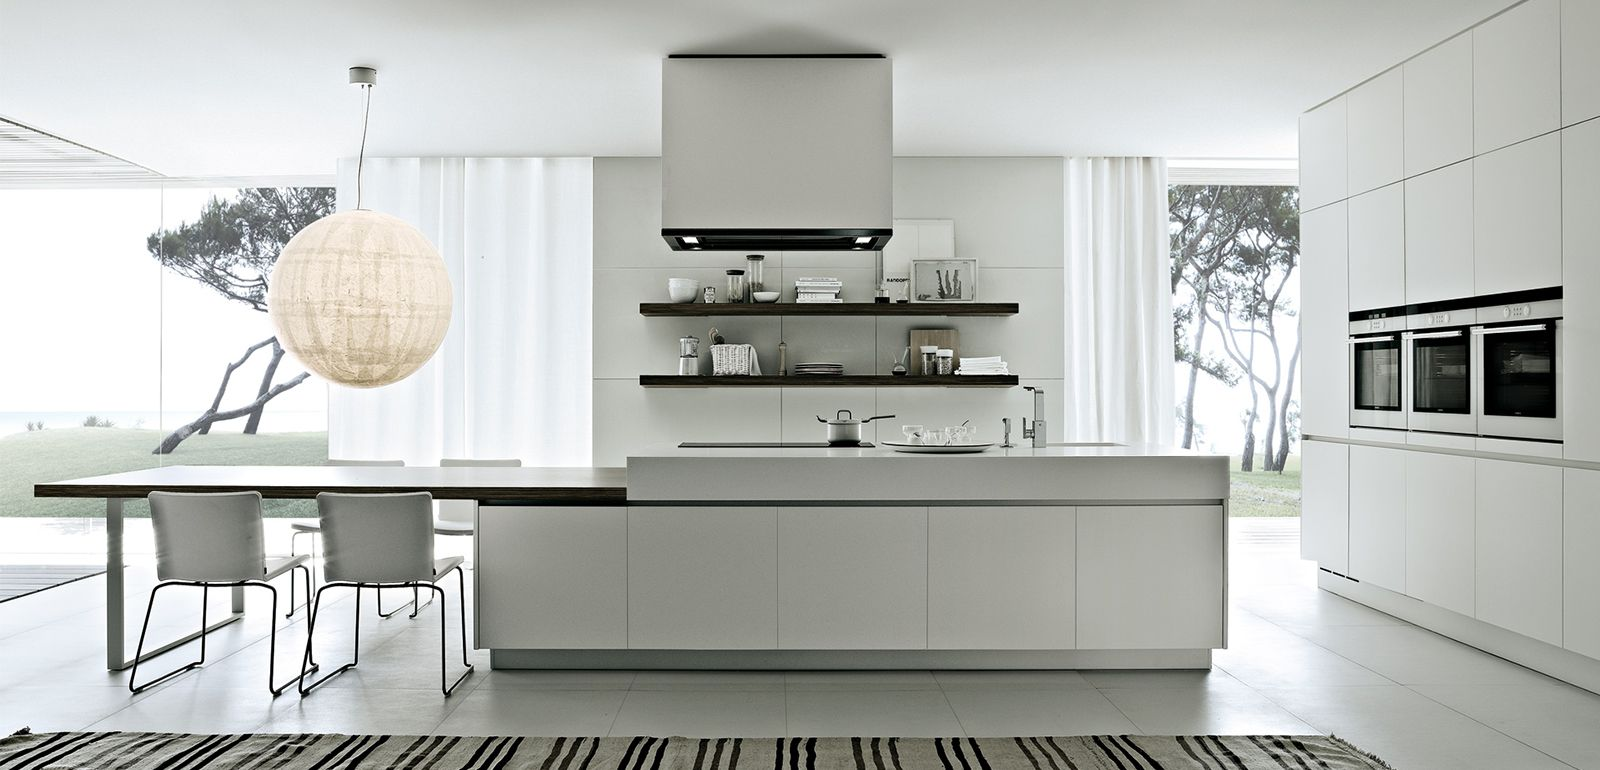 Cuisine Poliform Varenna Design Moderne Meuble De